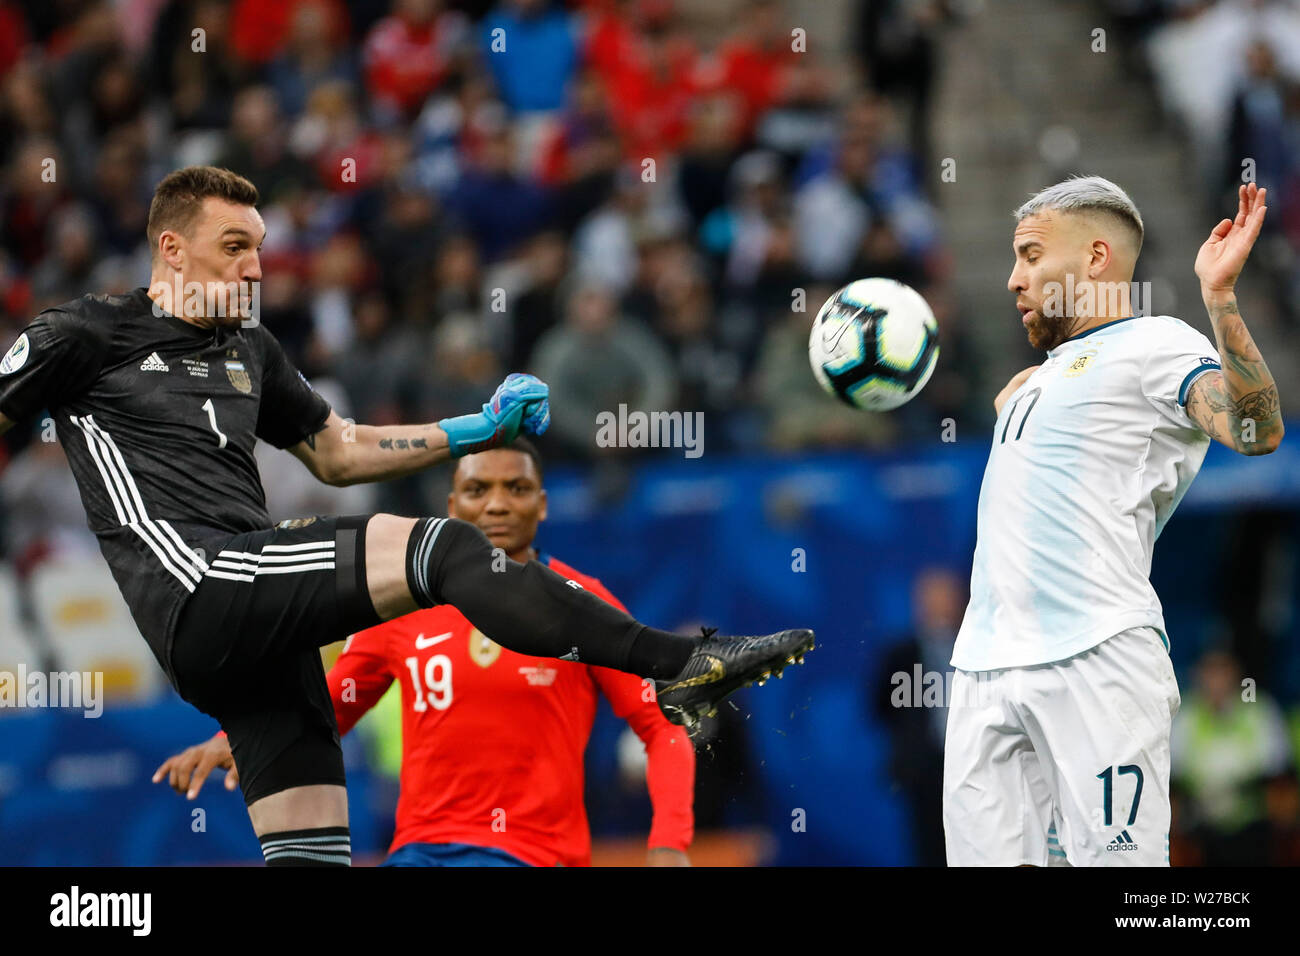 SÃO PAULO, SP - 06.07.2019: ARGENTINA VS. CHILE - Franco Armani and Otamendi during a match between Argentina and Chile, valid for the third place match of the Copa América 2019, held this Saturday (06) at the Corinthians Arena in São Paulo, SP. (Photo: Ricardo Moreira/Fotoarena) - Stock Image